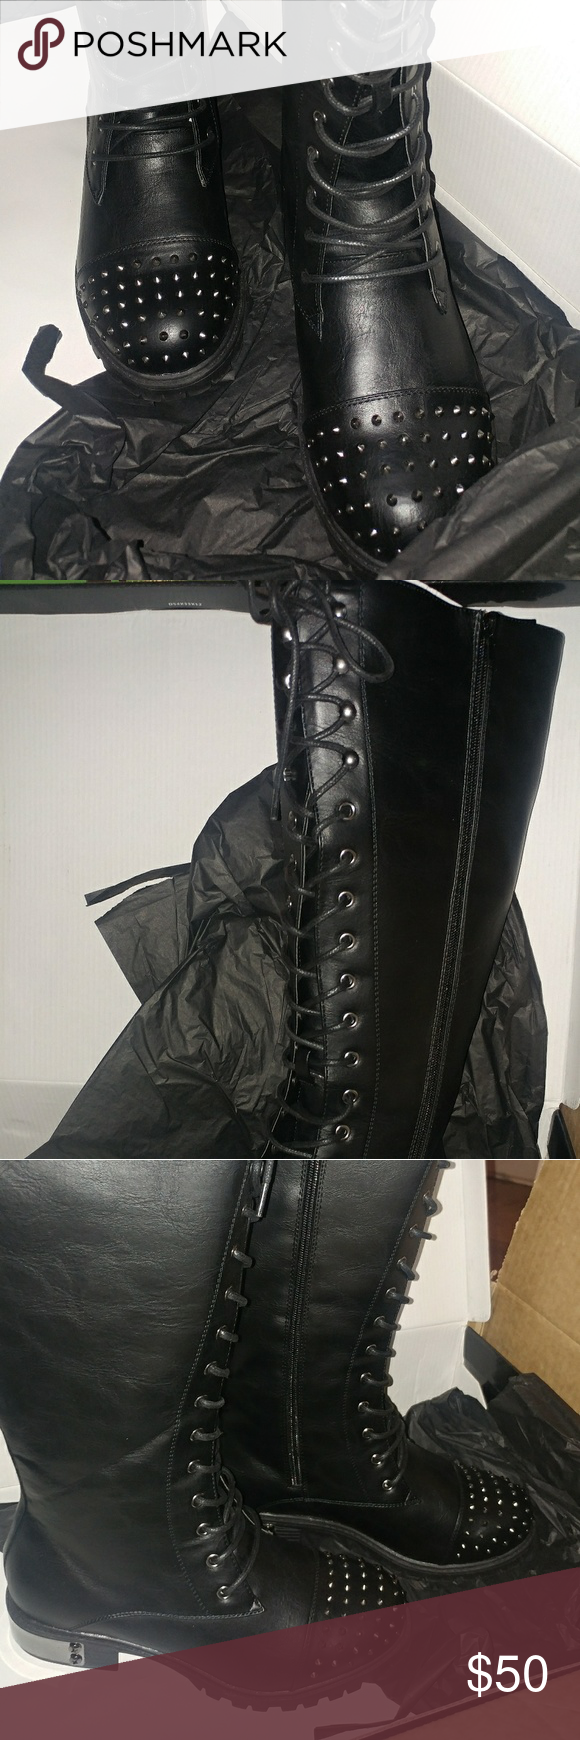 Torrid knee high boots. New in box Torrid brand. Studded toe, black, knee high boots. Lace up or zip up. Sz 10 wide. New in box. torrid Shoes Lace Up Boots